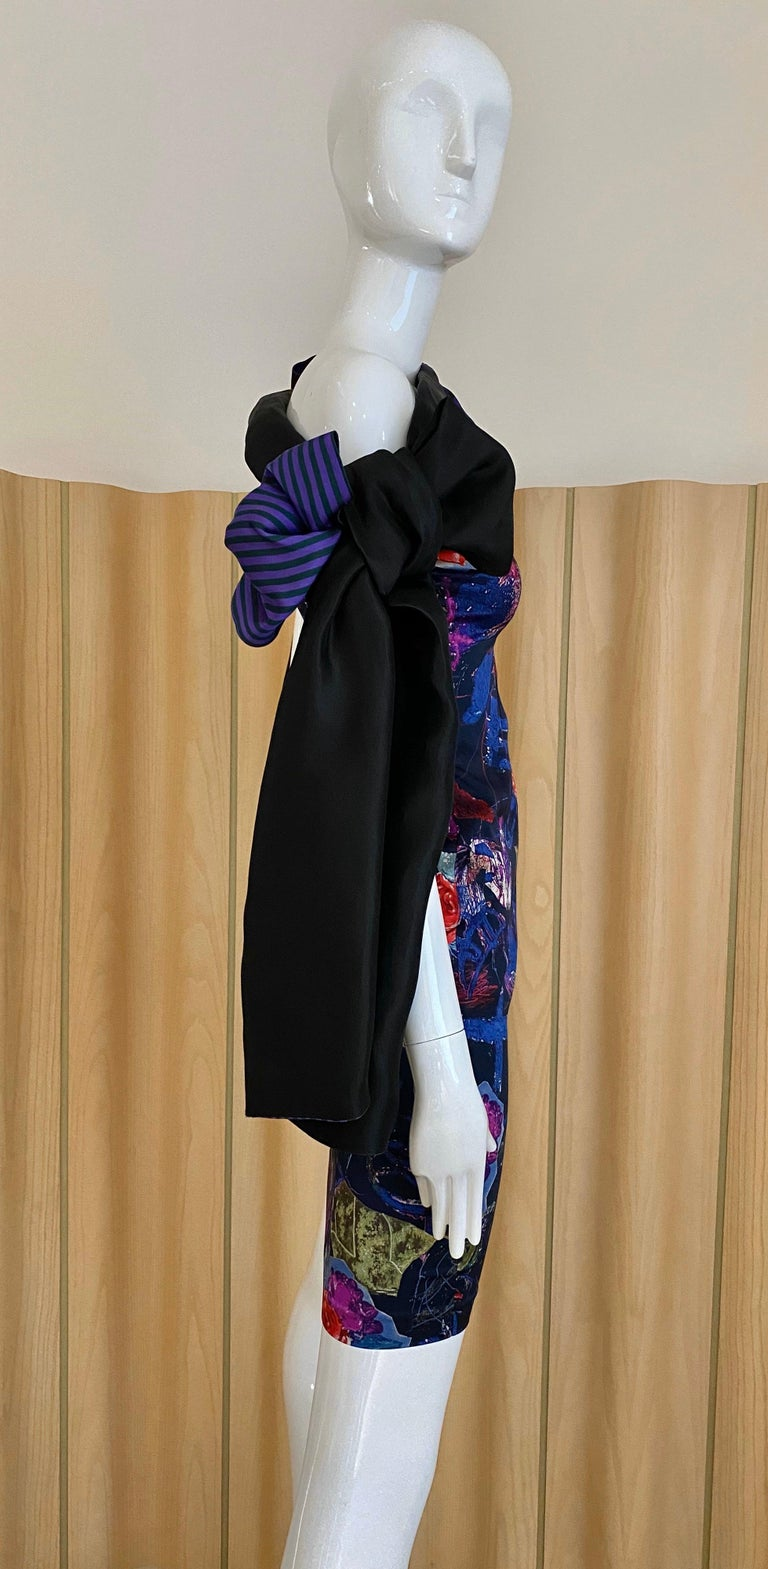 Christian Lacroix Multi Color Print Dress with Bows In Excellent Condition For Sale In Beverly Hills, CA